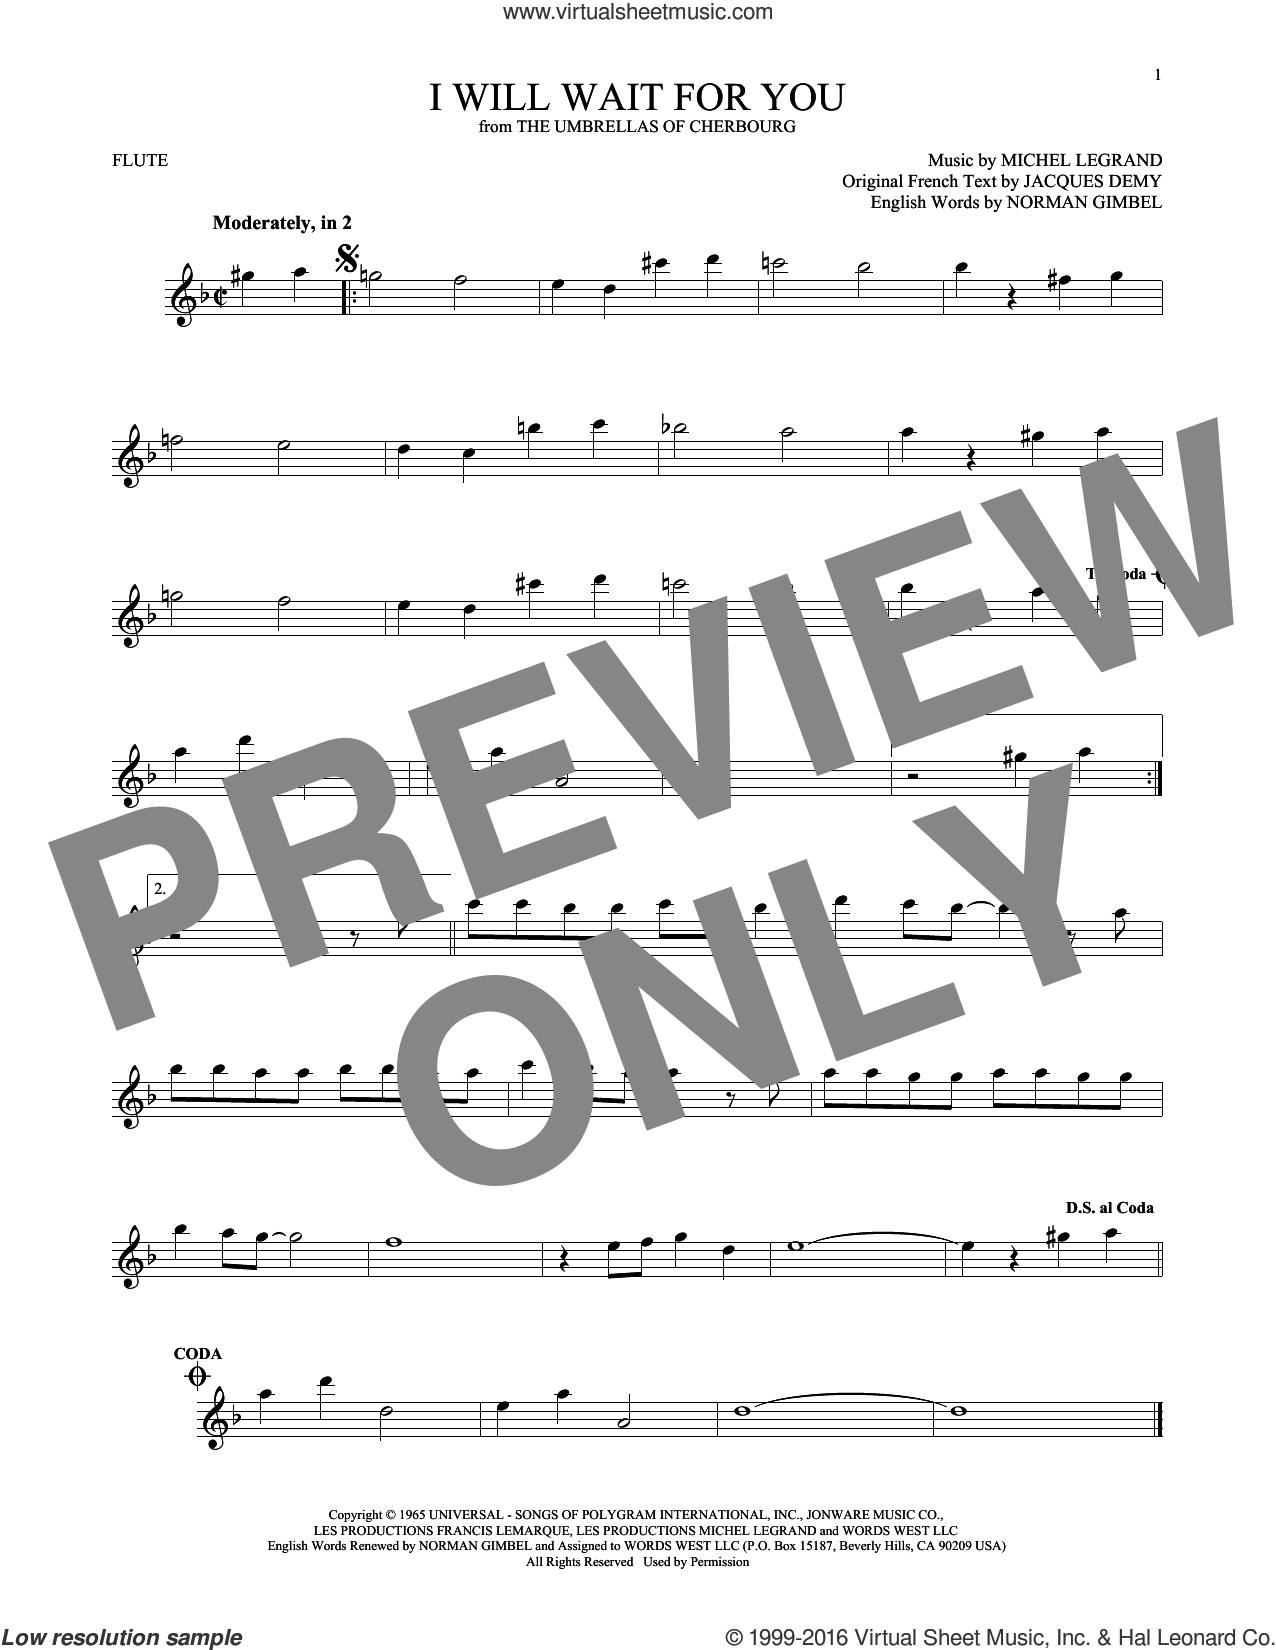 I Will Wait For You sheet music for flute solo by Norman Gimbel, Jacques Demy and Michel Legrand. Score Image Preview.